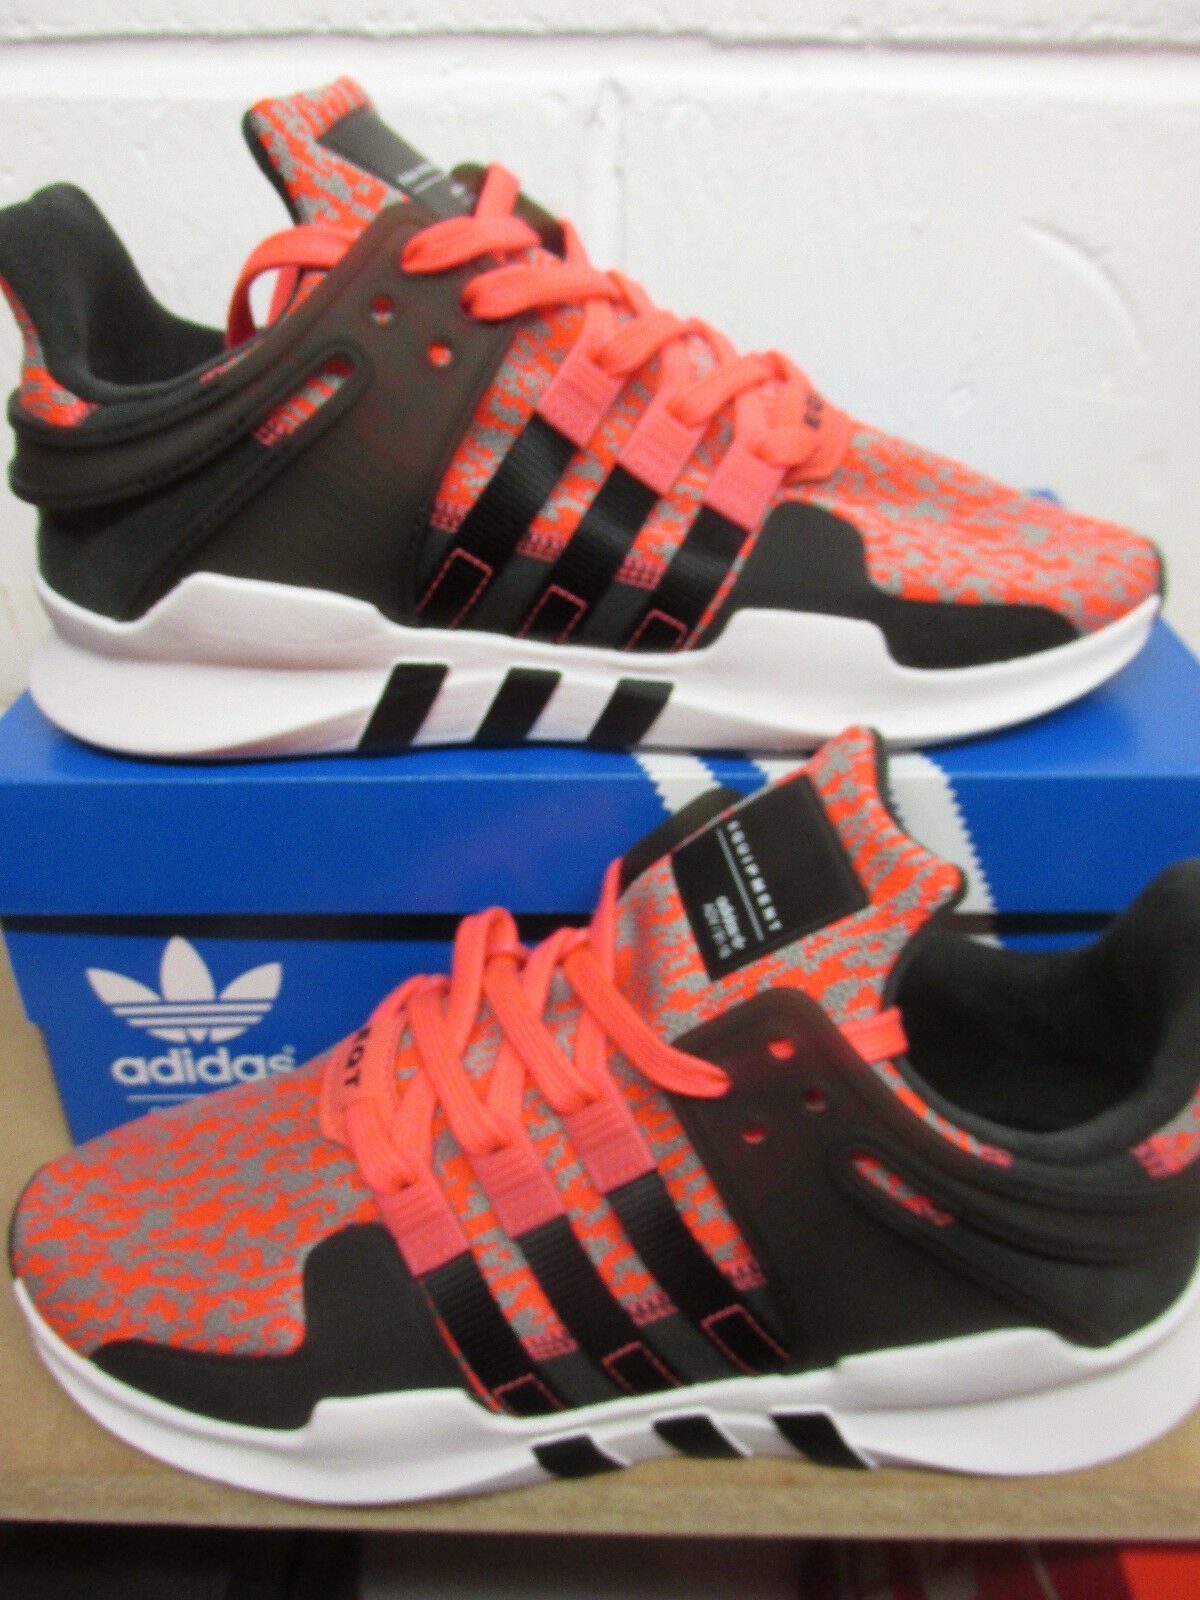 Adidas Public Authority GSG-9.3.1 High - Sandstone Bottes chaussures U41775 - High Adult Unis 4d8206